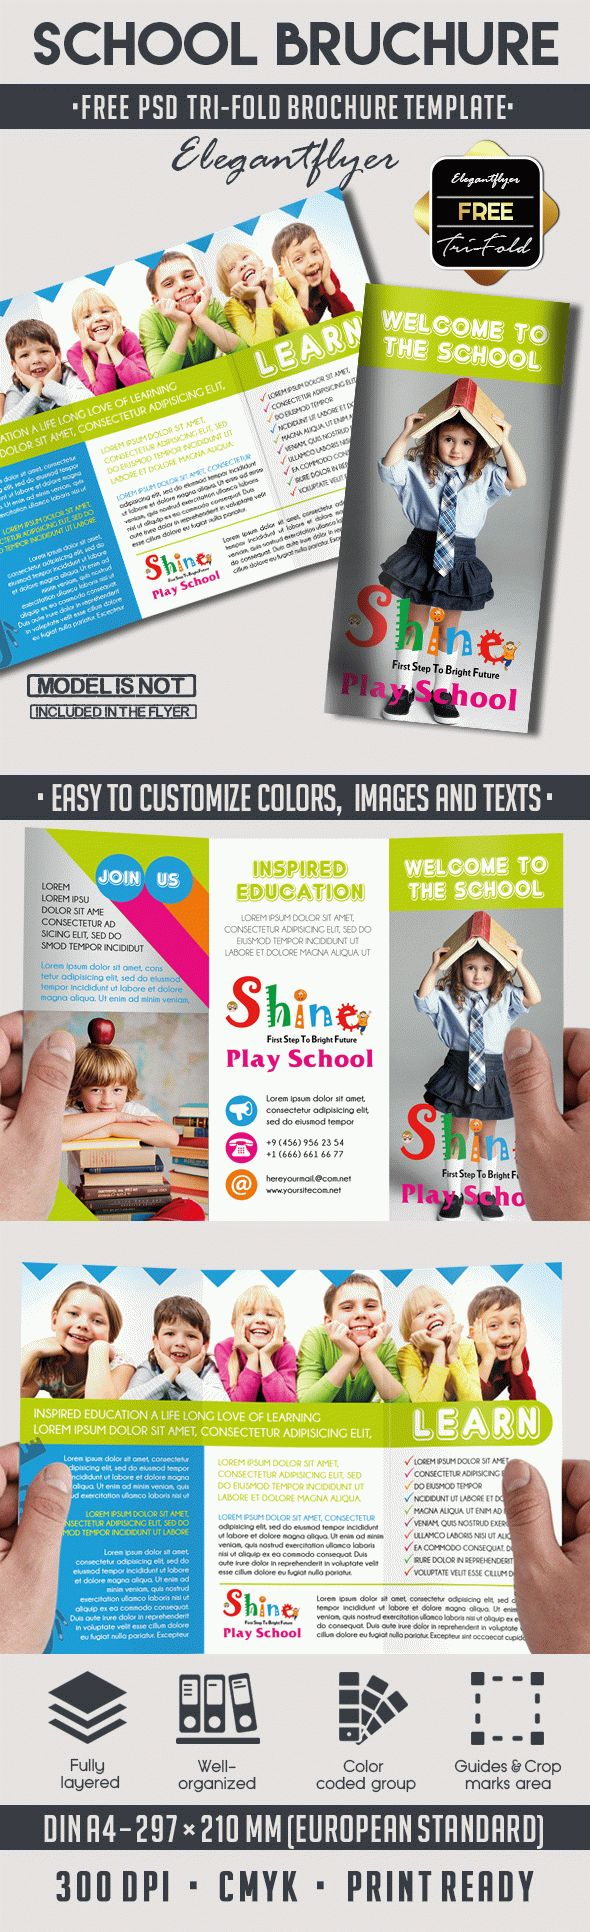 school brochure template - school free psd tri fold psd brochure template by